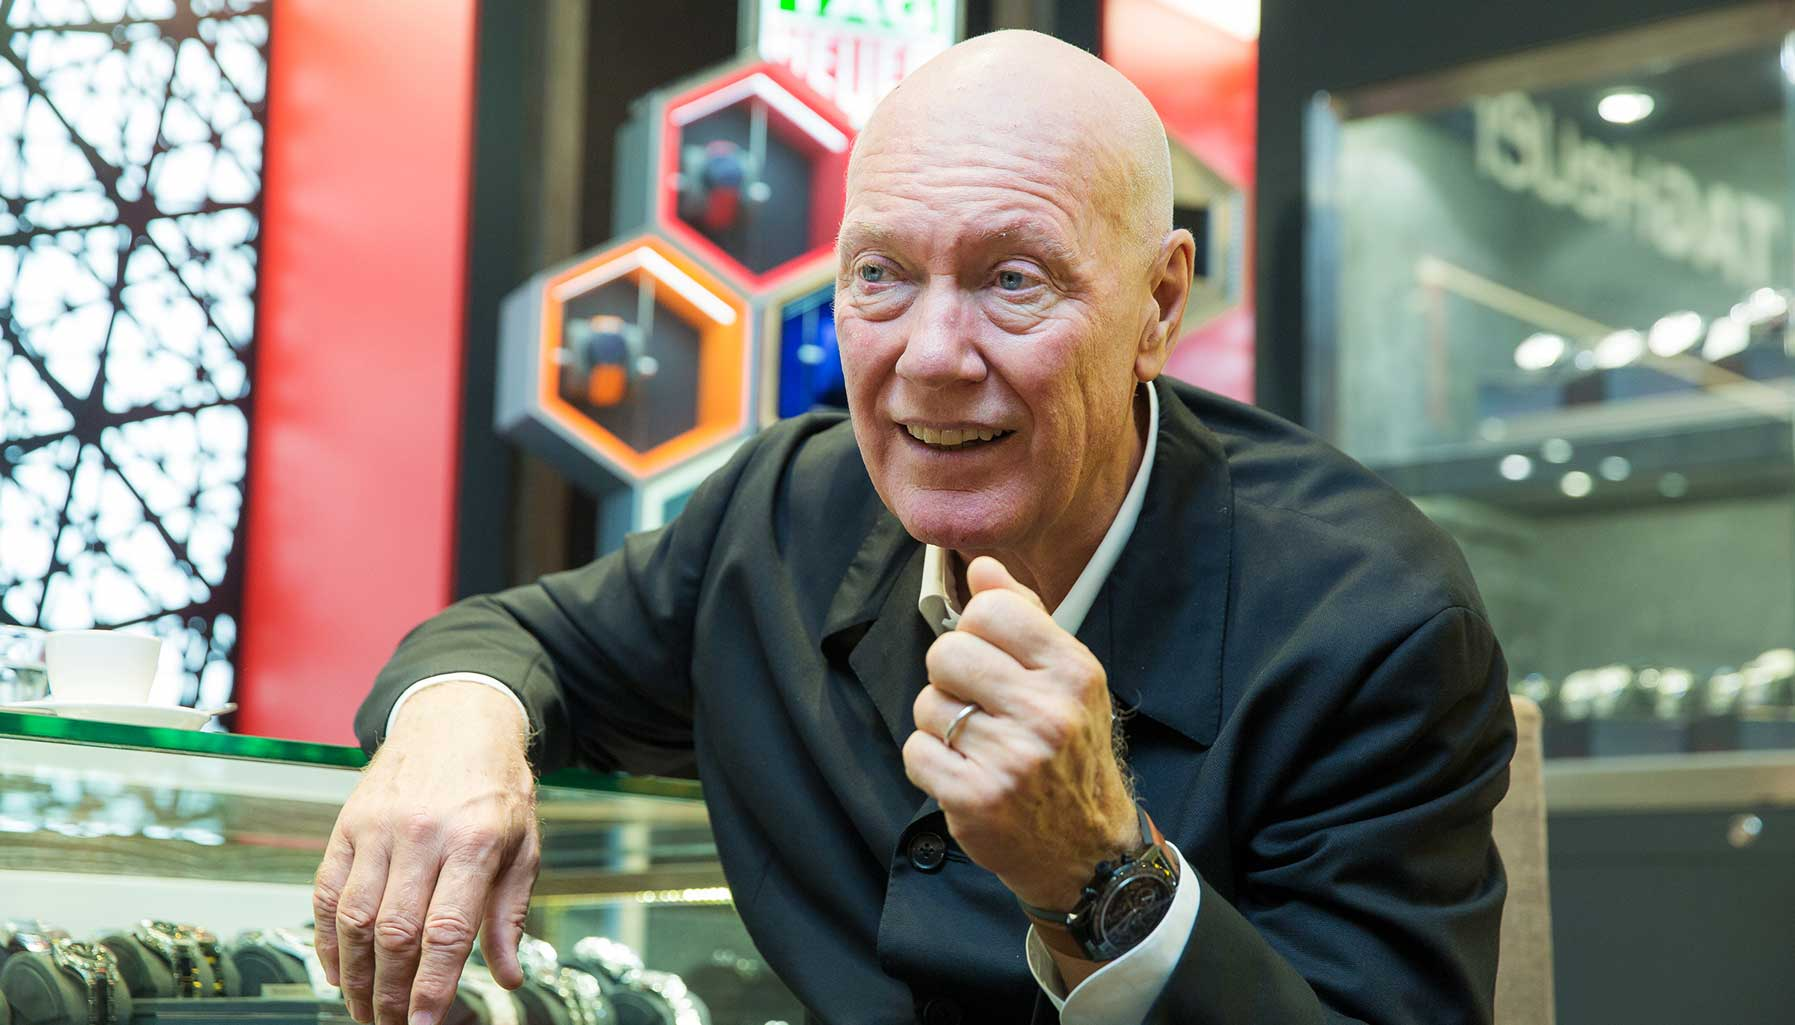 Jean-Claude Biver, Tag Heuer